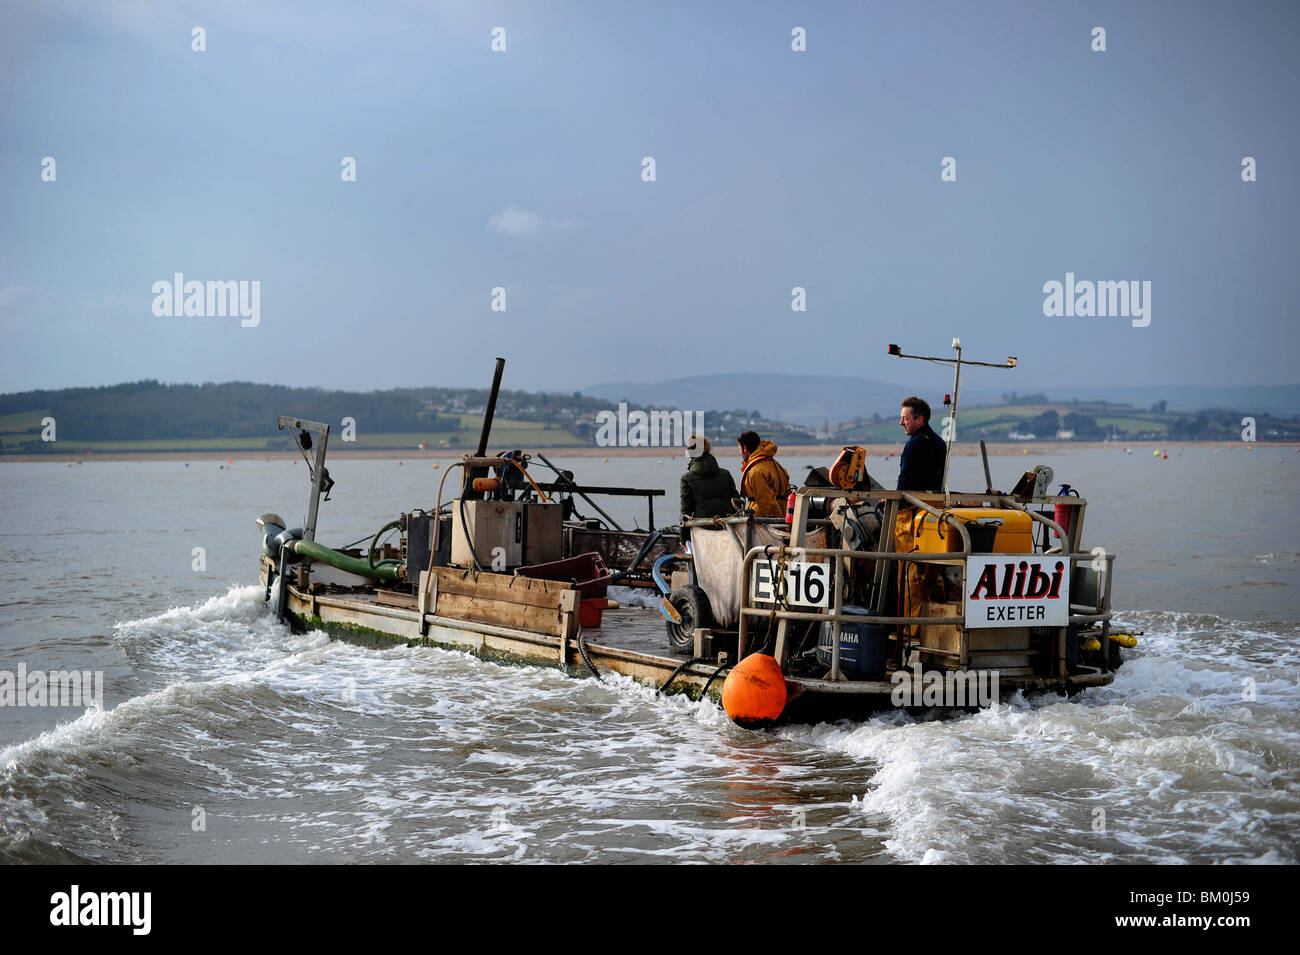 A mussel barge pictured working on the Exe Estuary, Exmouth, Devon - Stock Image